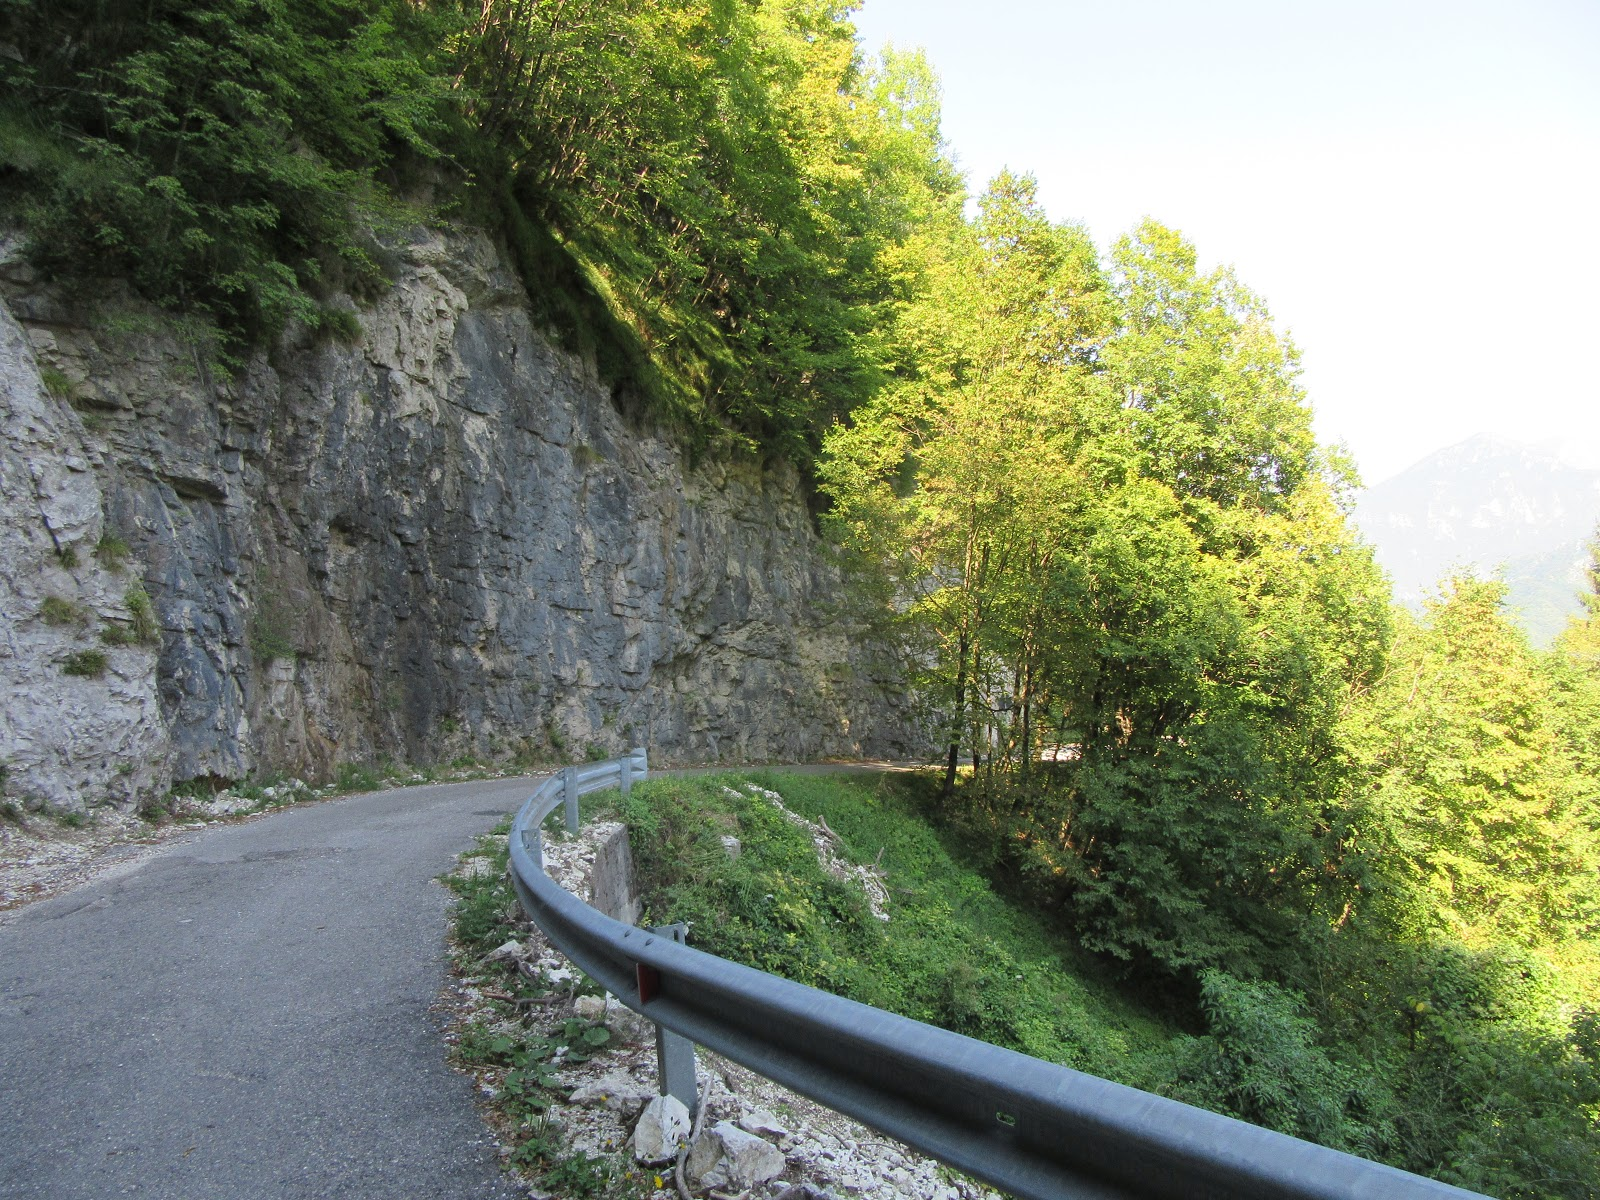 Bike climb Monte Grappa from Seren - narrow unnamed road